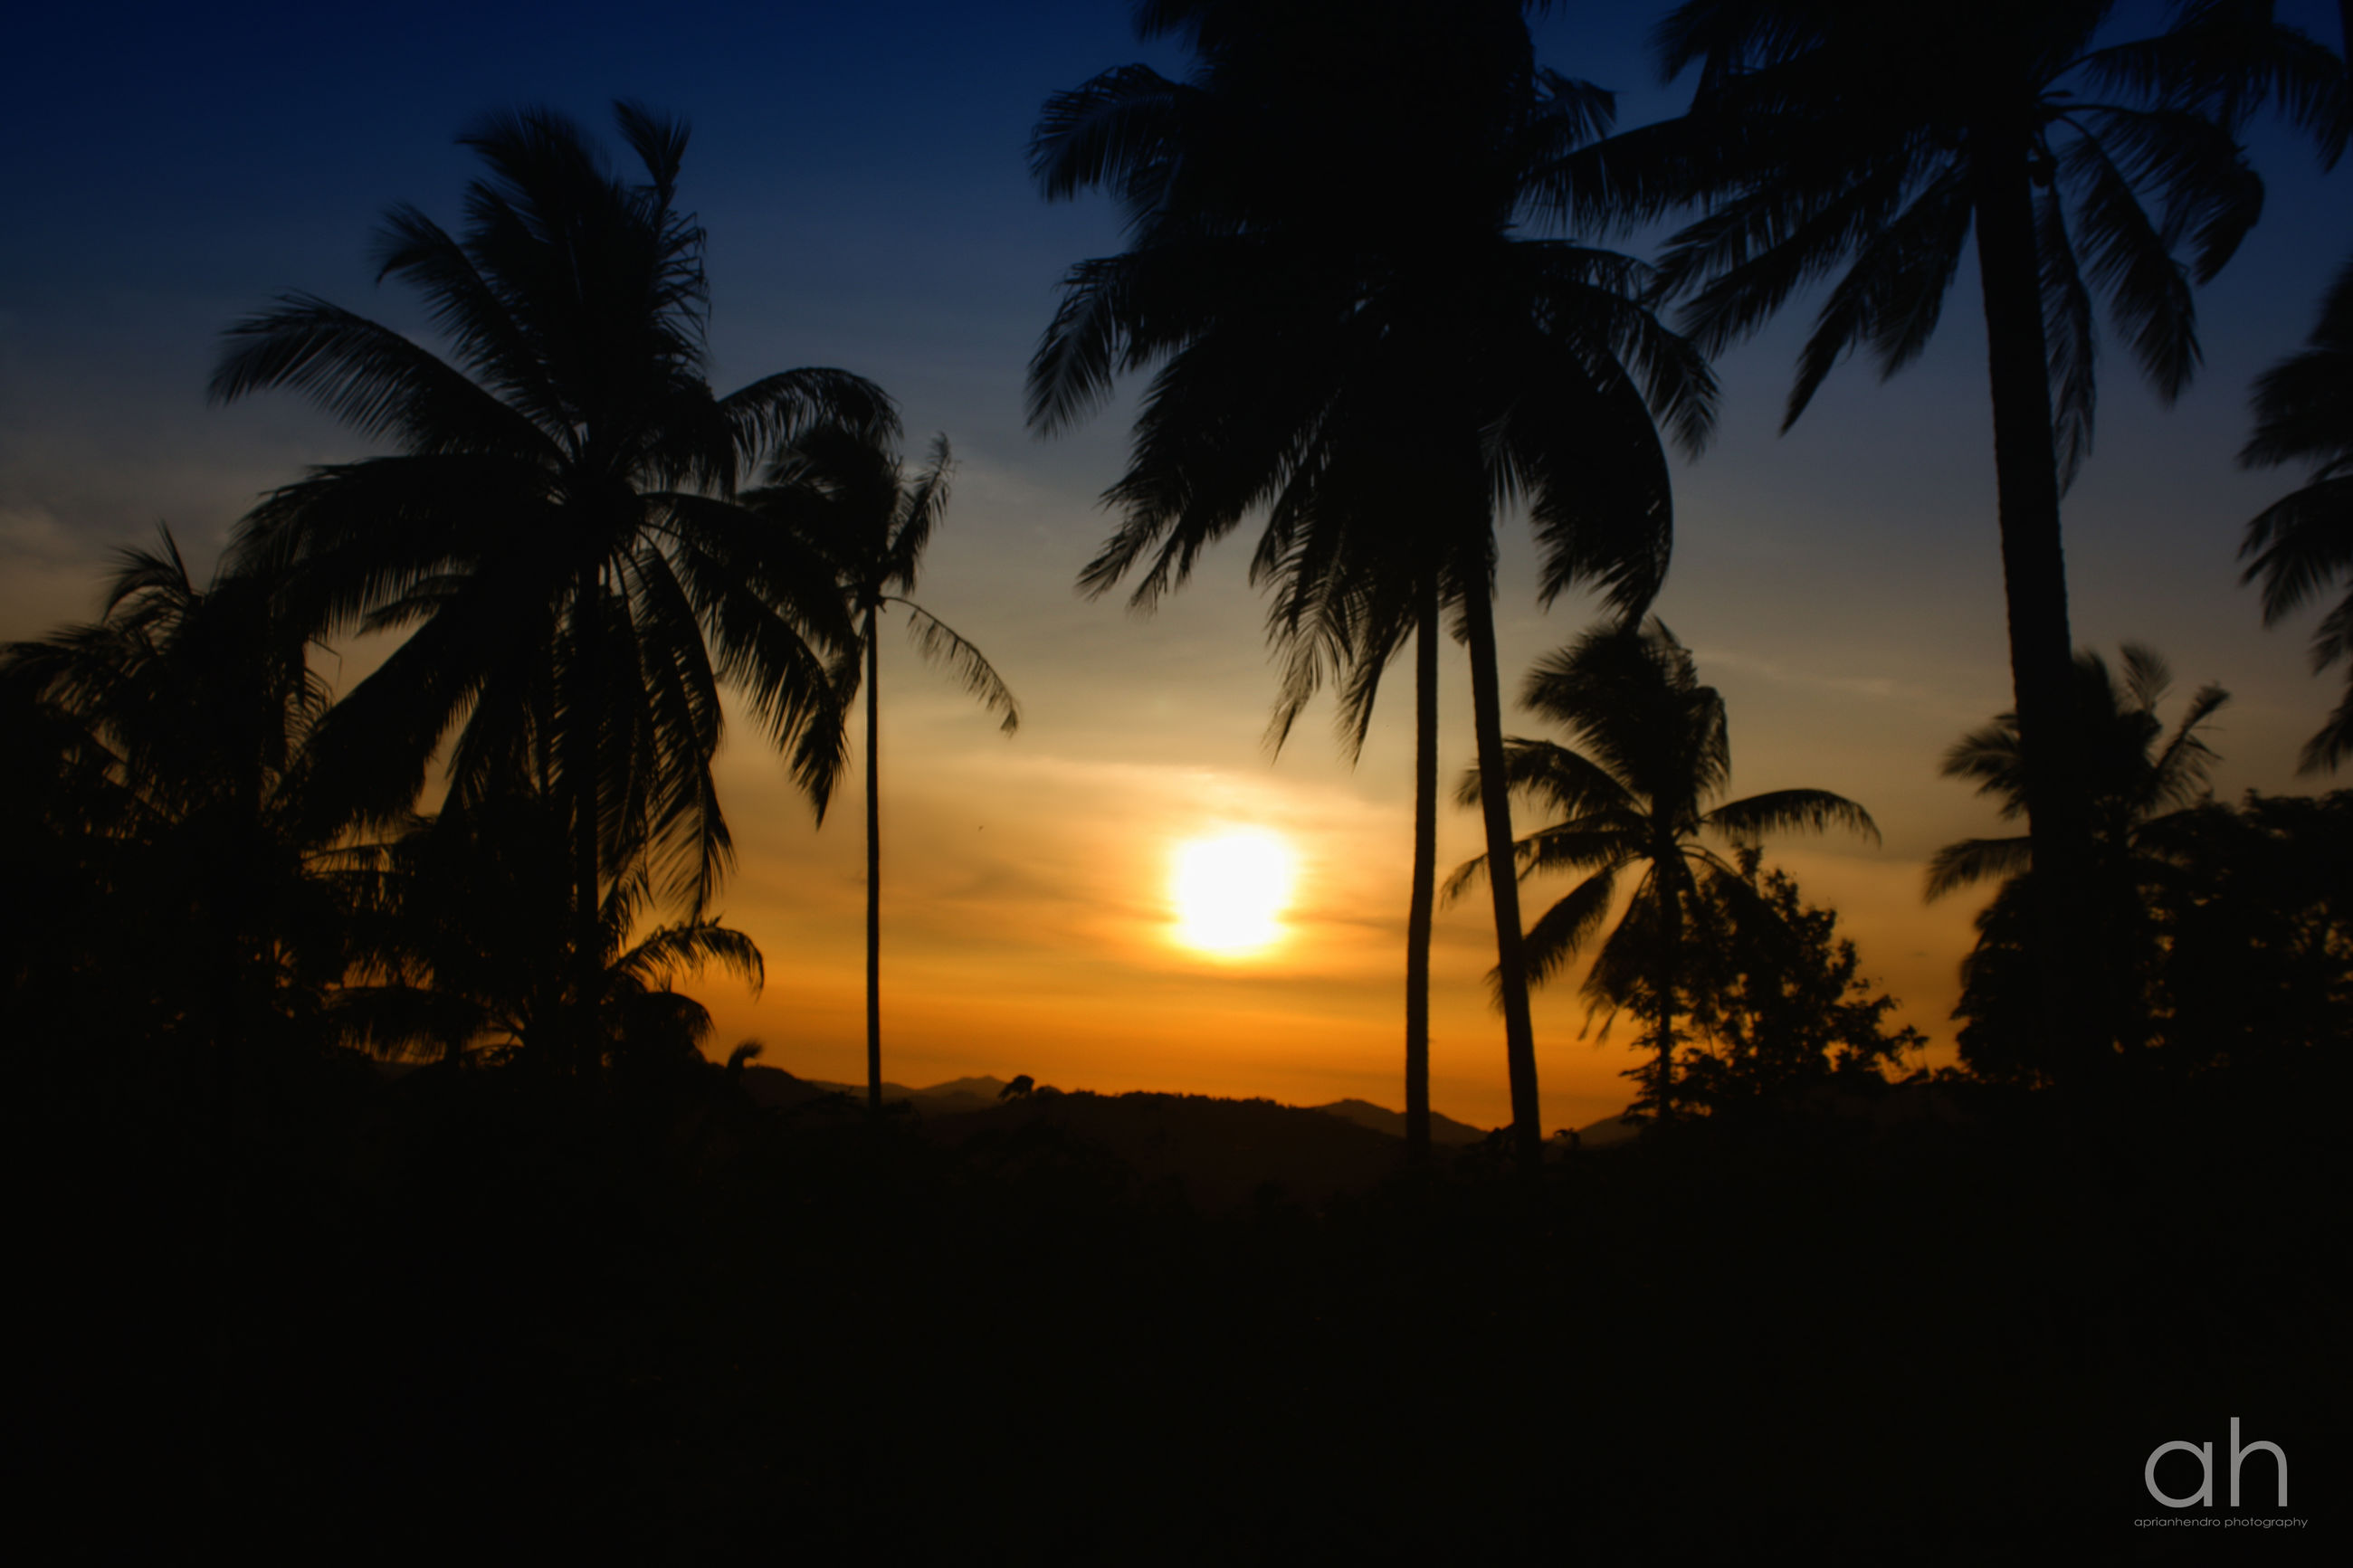 sunset, silhouette, tree, palm tree, tranquility, sky, scenics, beauty in nature, tranquil scene, nature, sun, orange color, outline, idyllic, landscape, growth, cloud - sky, low angle view, cloud, outdoors